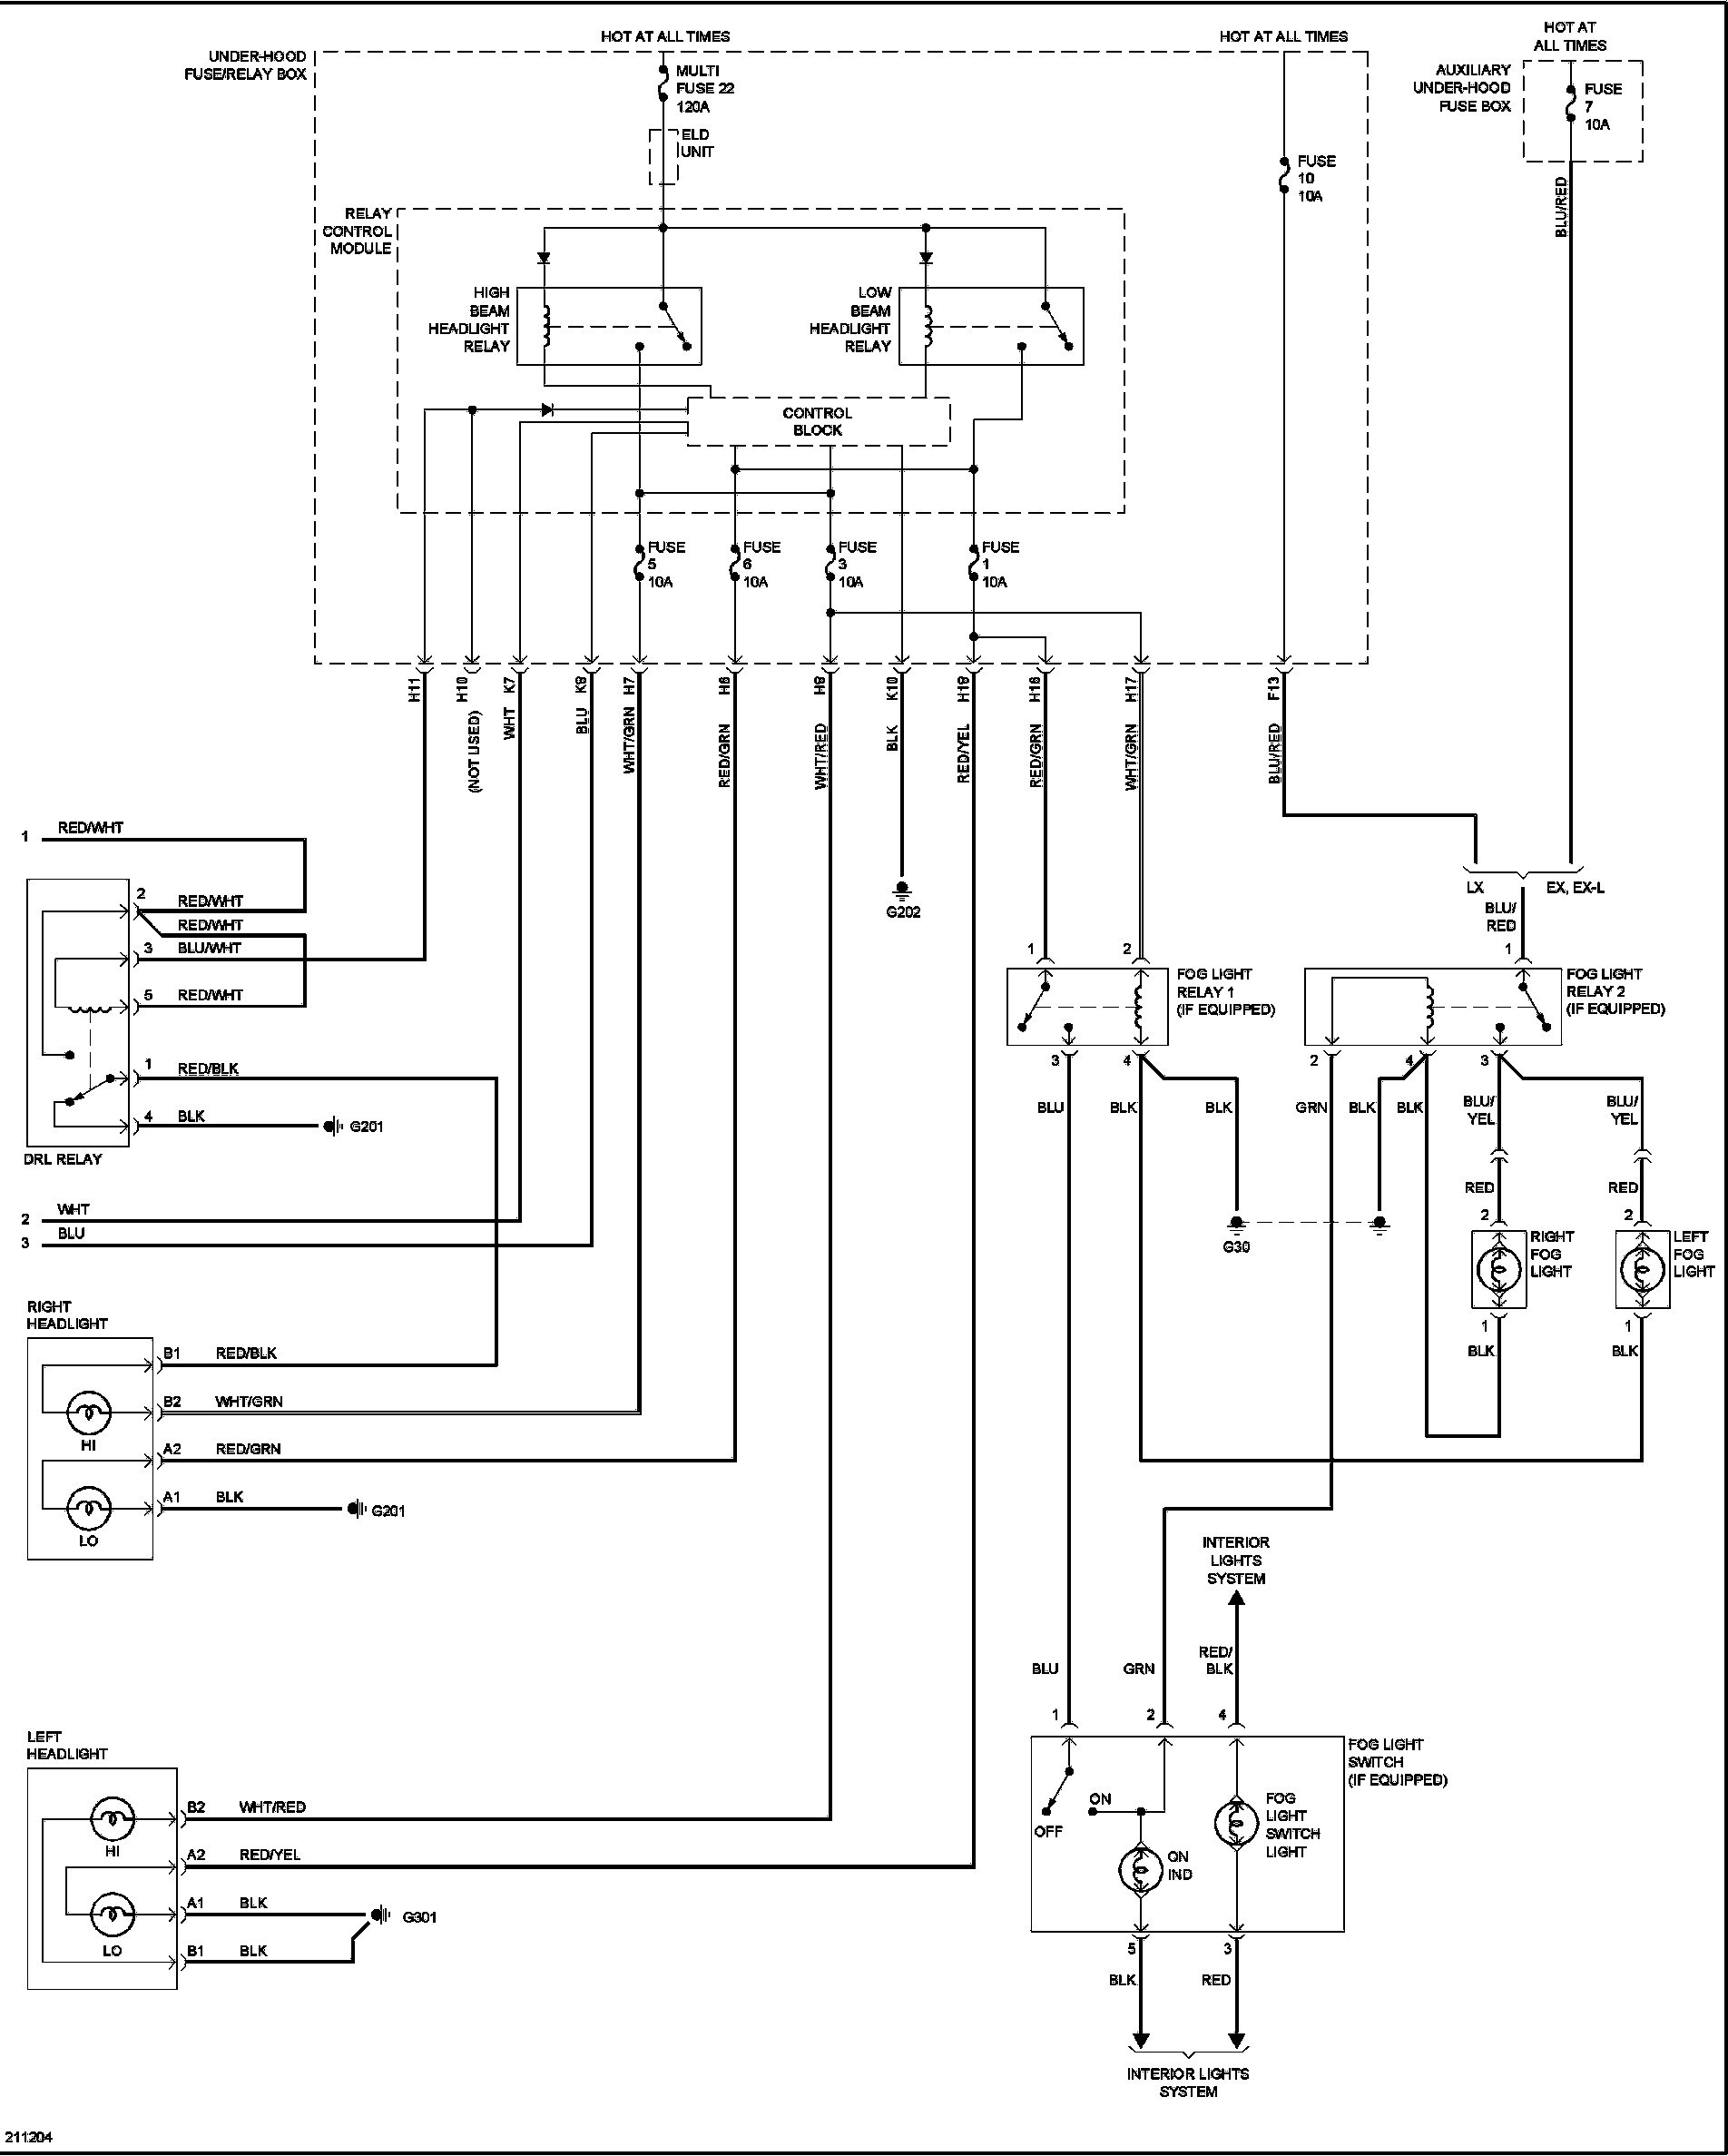 hight resolution of 2005 accord wiring diagram wiring diagram home 2005 honda accord speaker wiring diagram 2005 accord wiring diagram